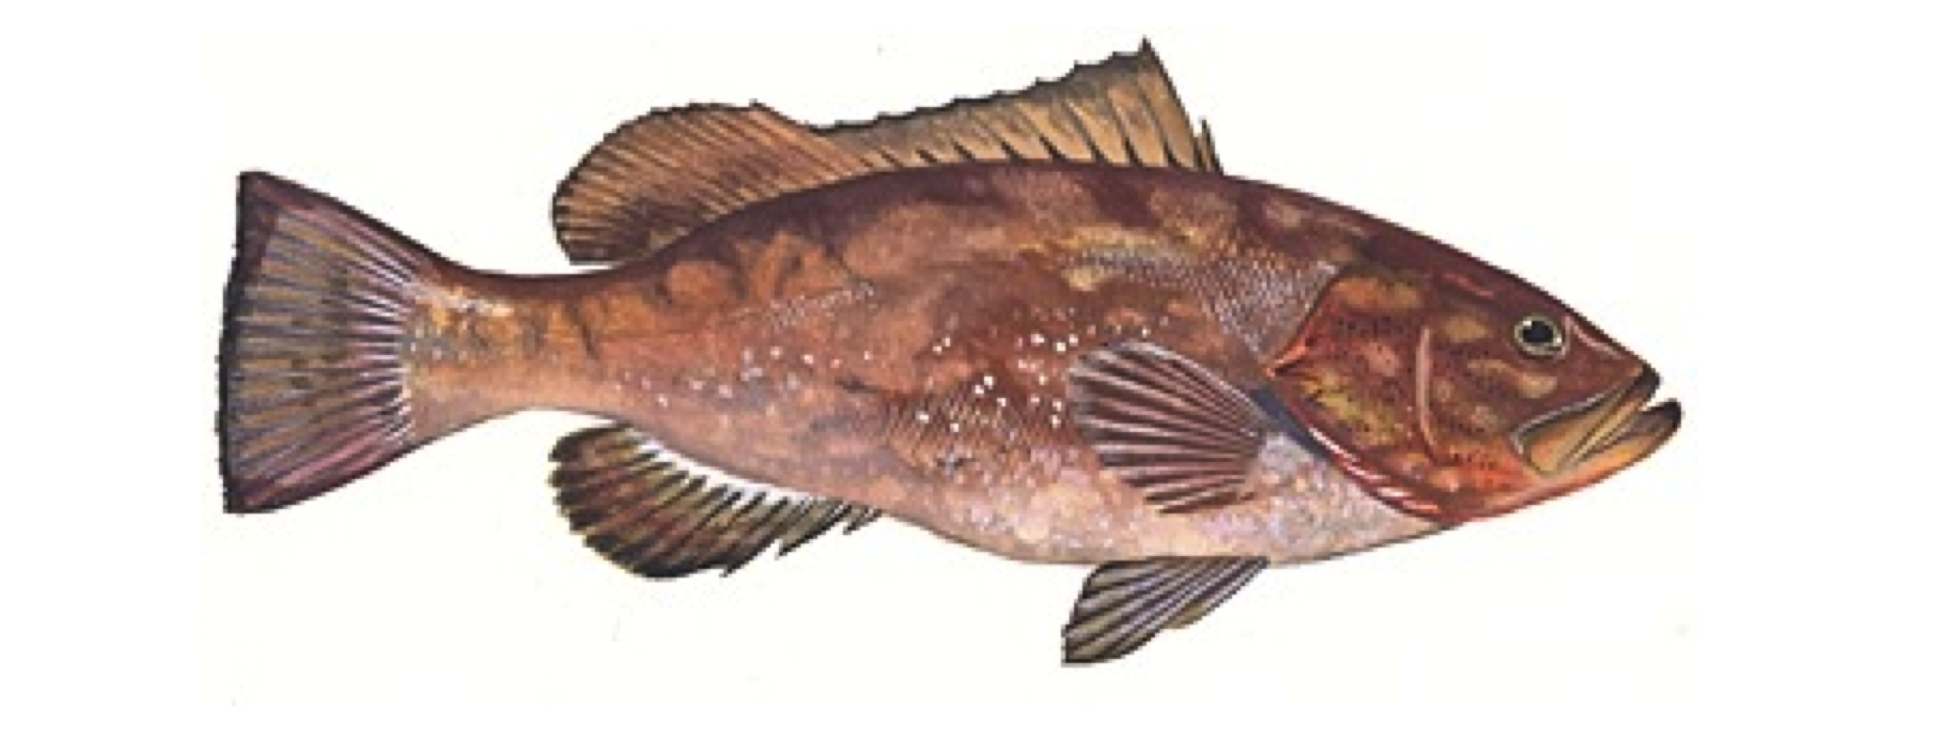 Good eating fish captiva fishing report for Fish to eat